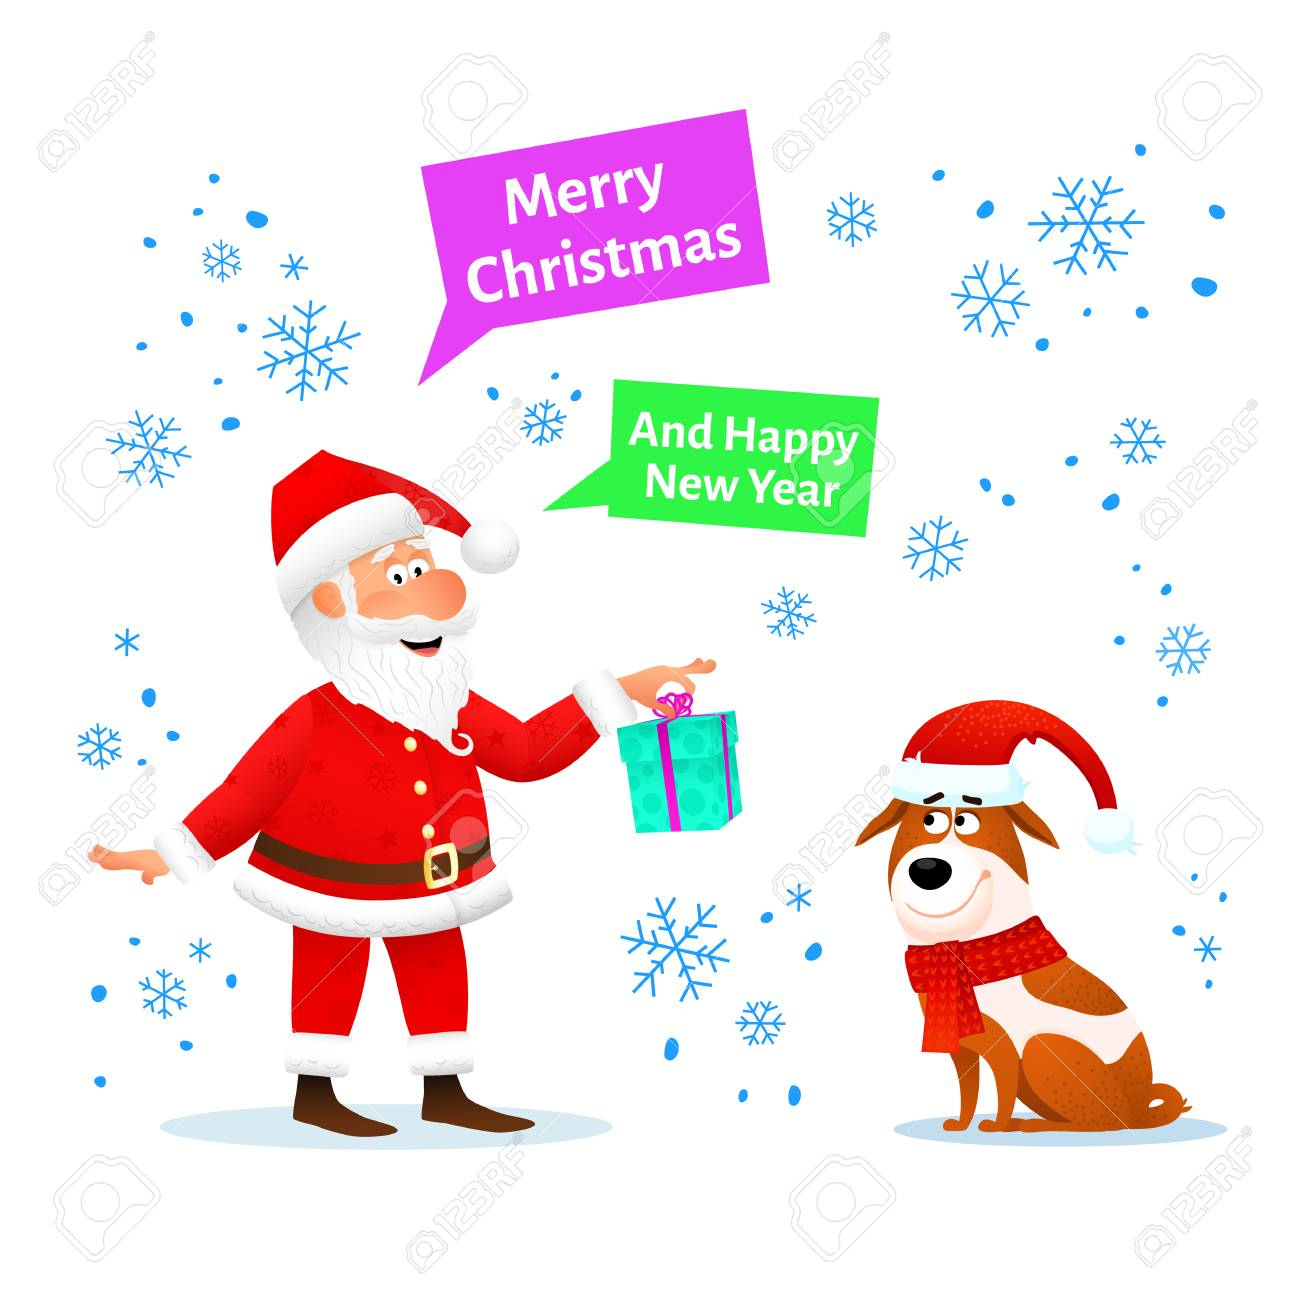 Merry christmas card funny santa claus with xmas gift and dog merry christmas card funny santa claus with xmas gift and dog in red hat on m4hsunfo